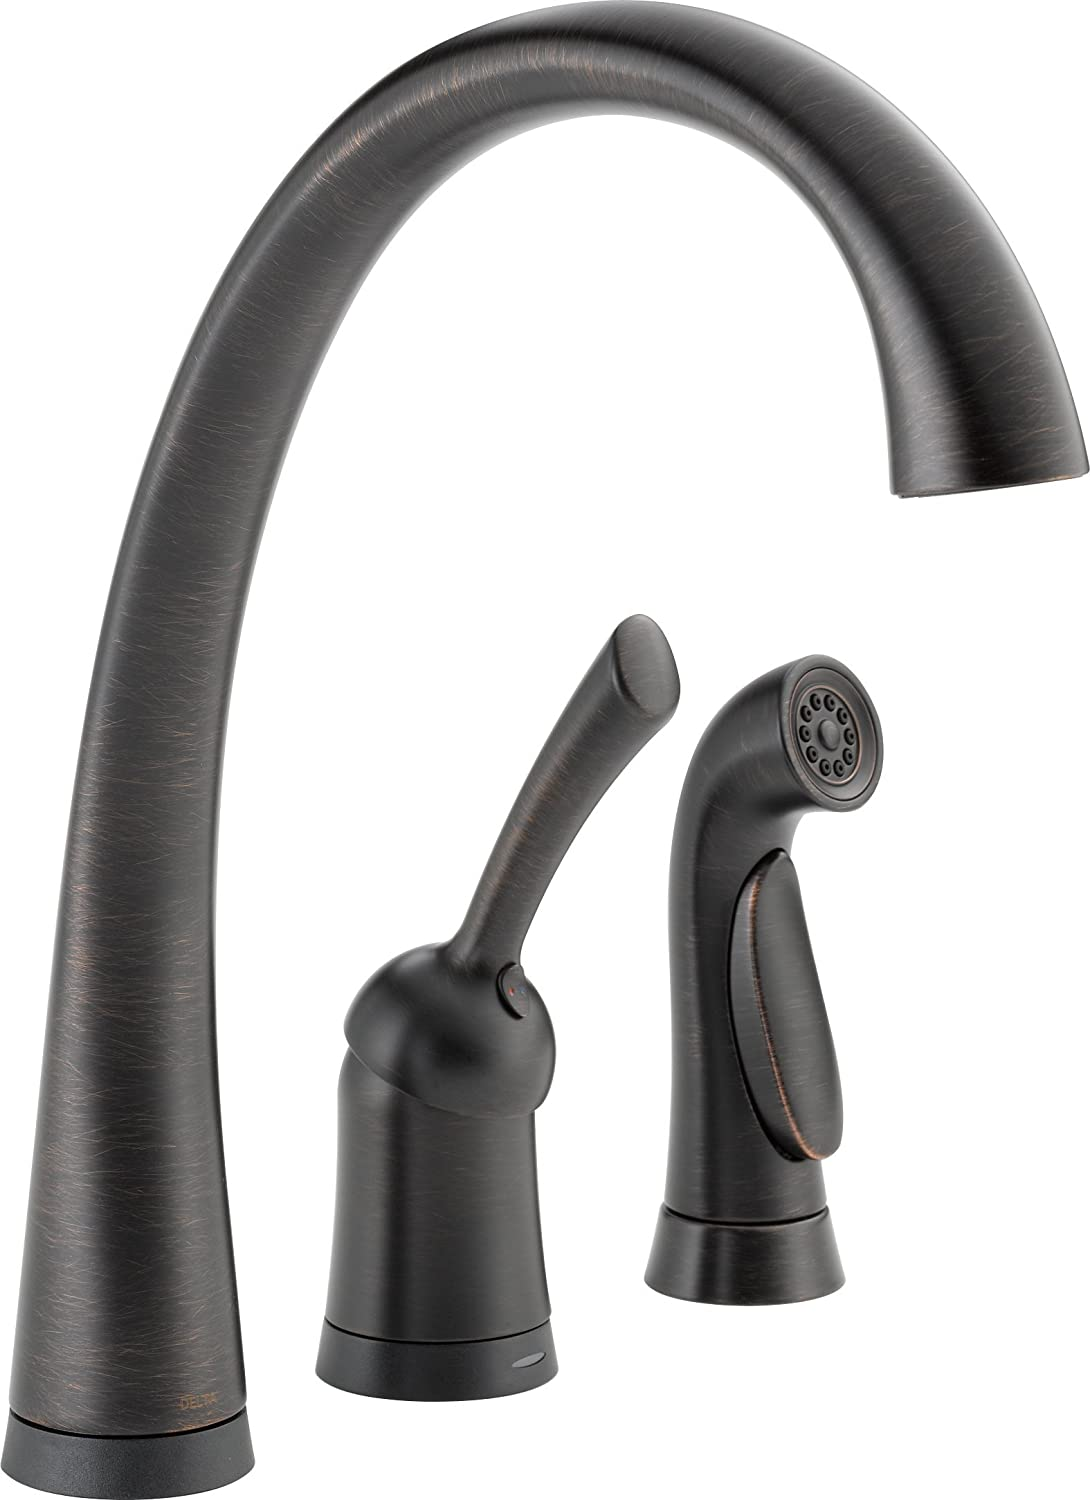 Delta 4380T DST Pilar Single Handle Kitchen Faucet With Touch2O Technology  And Spray, Chrome   Touch On Kitchen Sink Faucets   Amazon.com